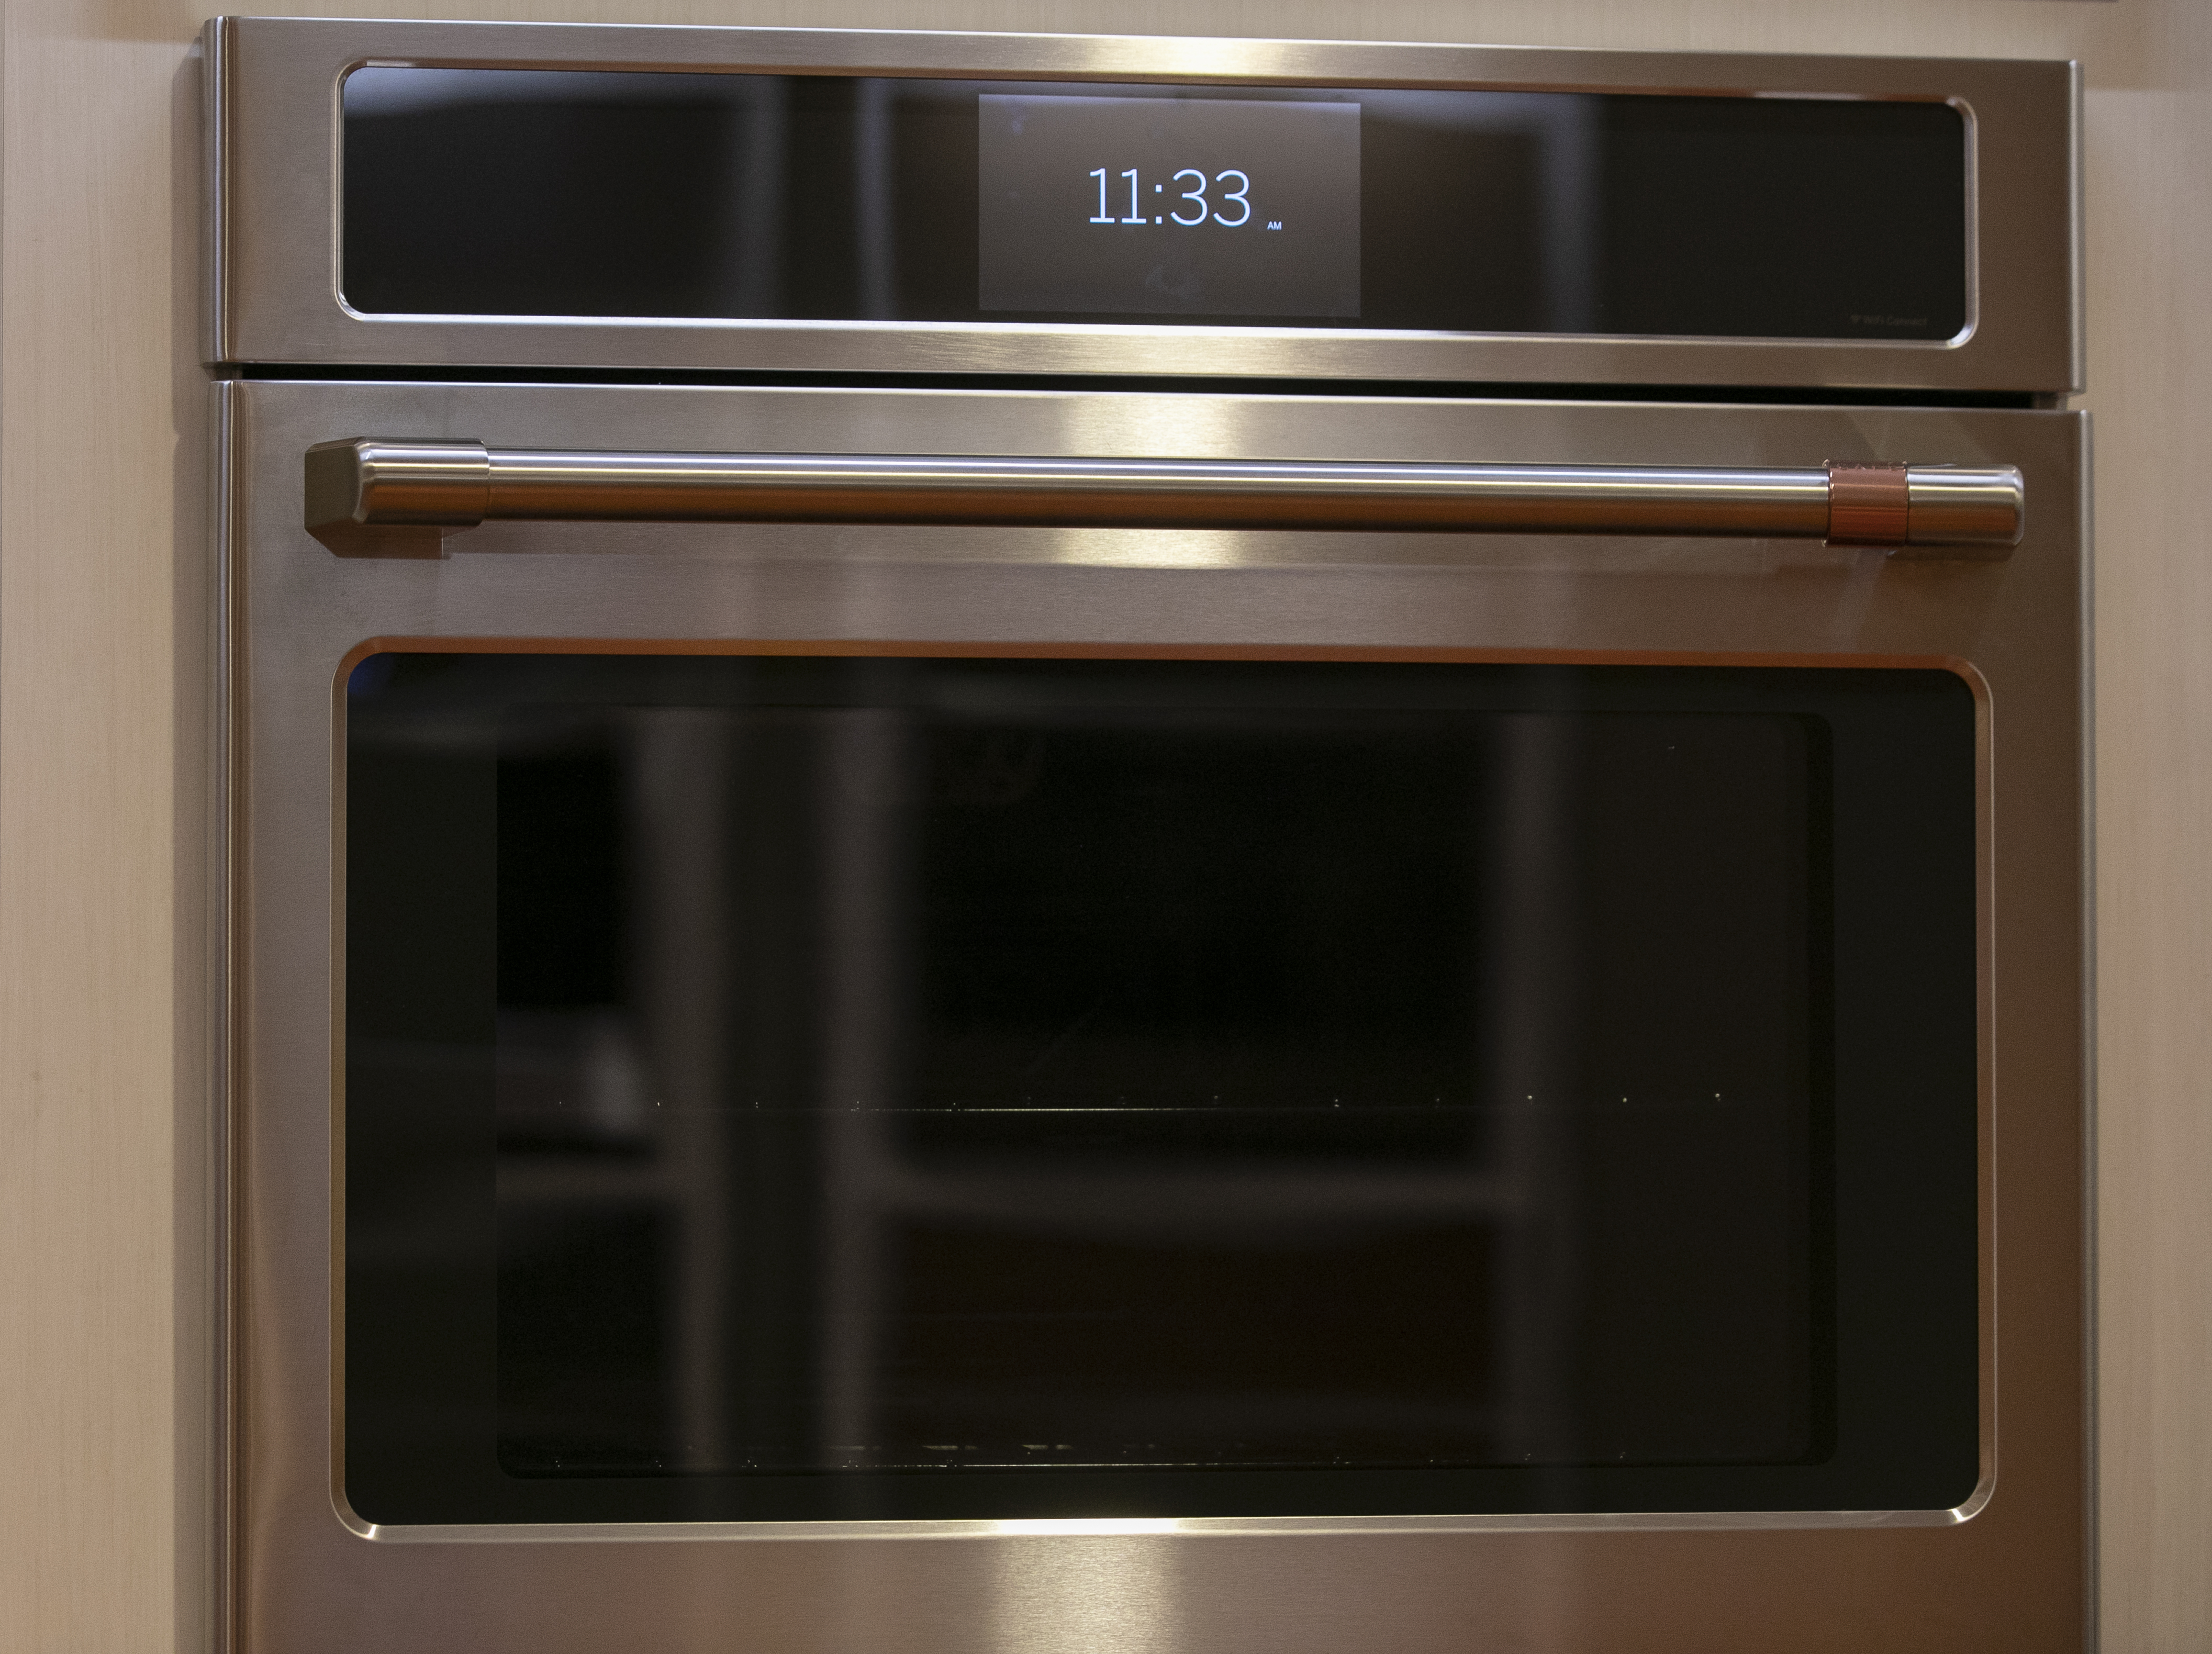 Ge Appliances Launches Popular Air Fry Technology In New